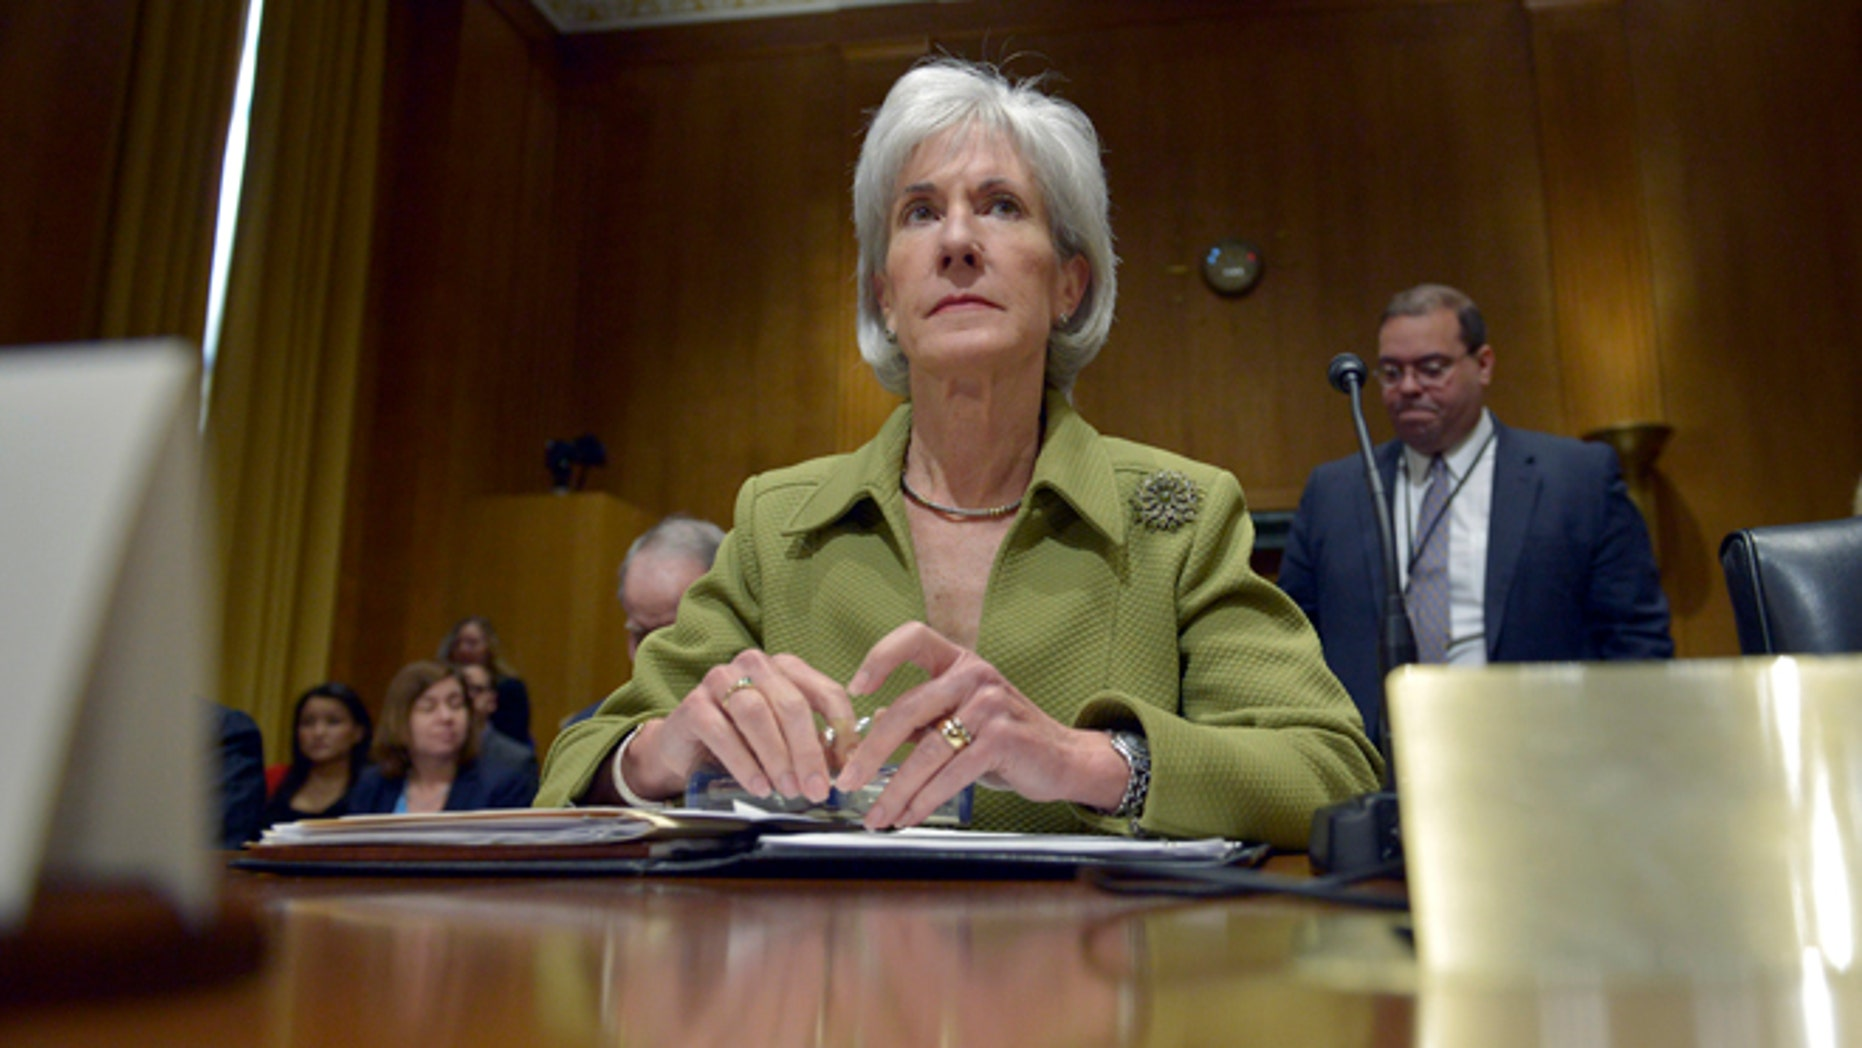 Kathleen Sebelius on Capitol Hill Thursday, April 10, 2014, during a Senate Finance Committee hearing.